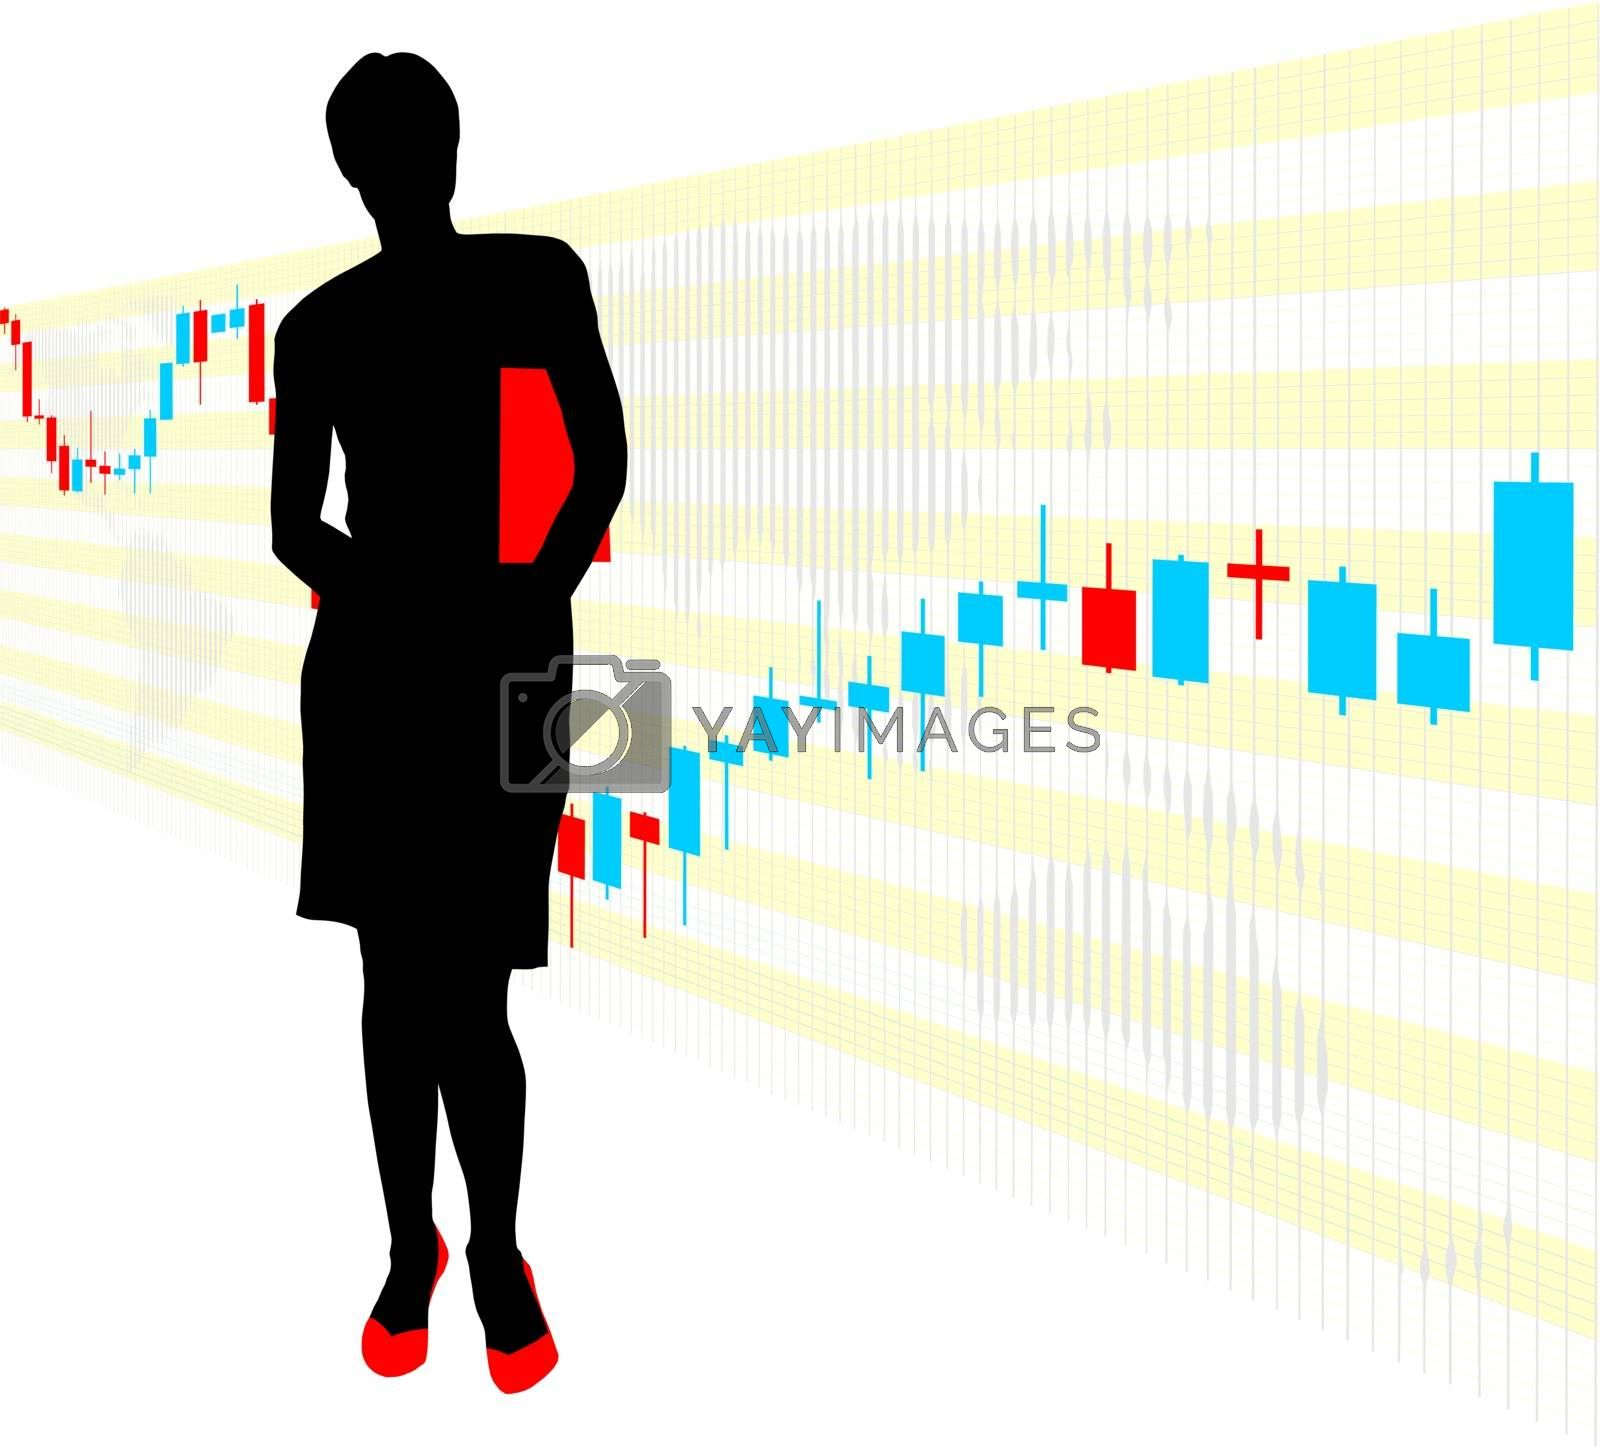 Royalty free image of World Stock Exchange Market 2 by ard1